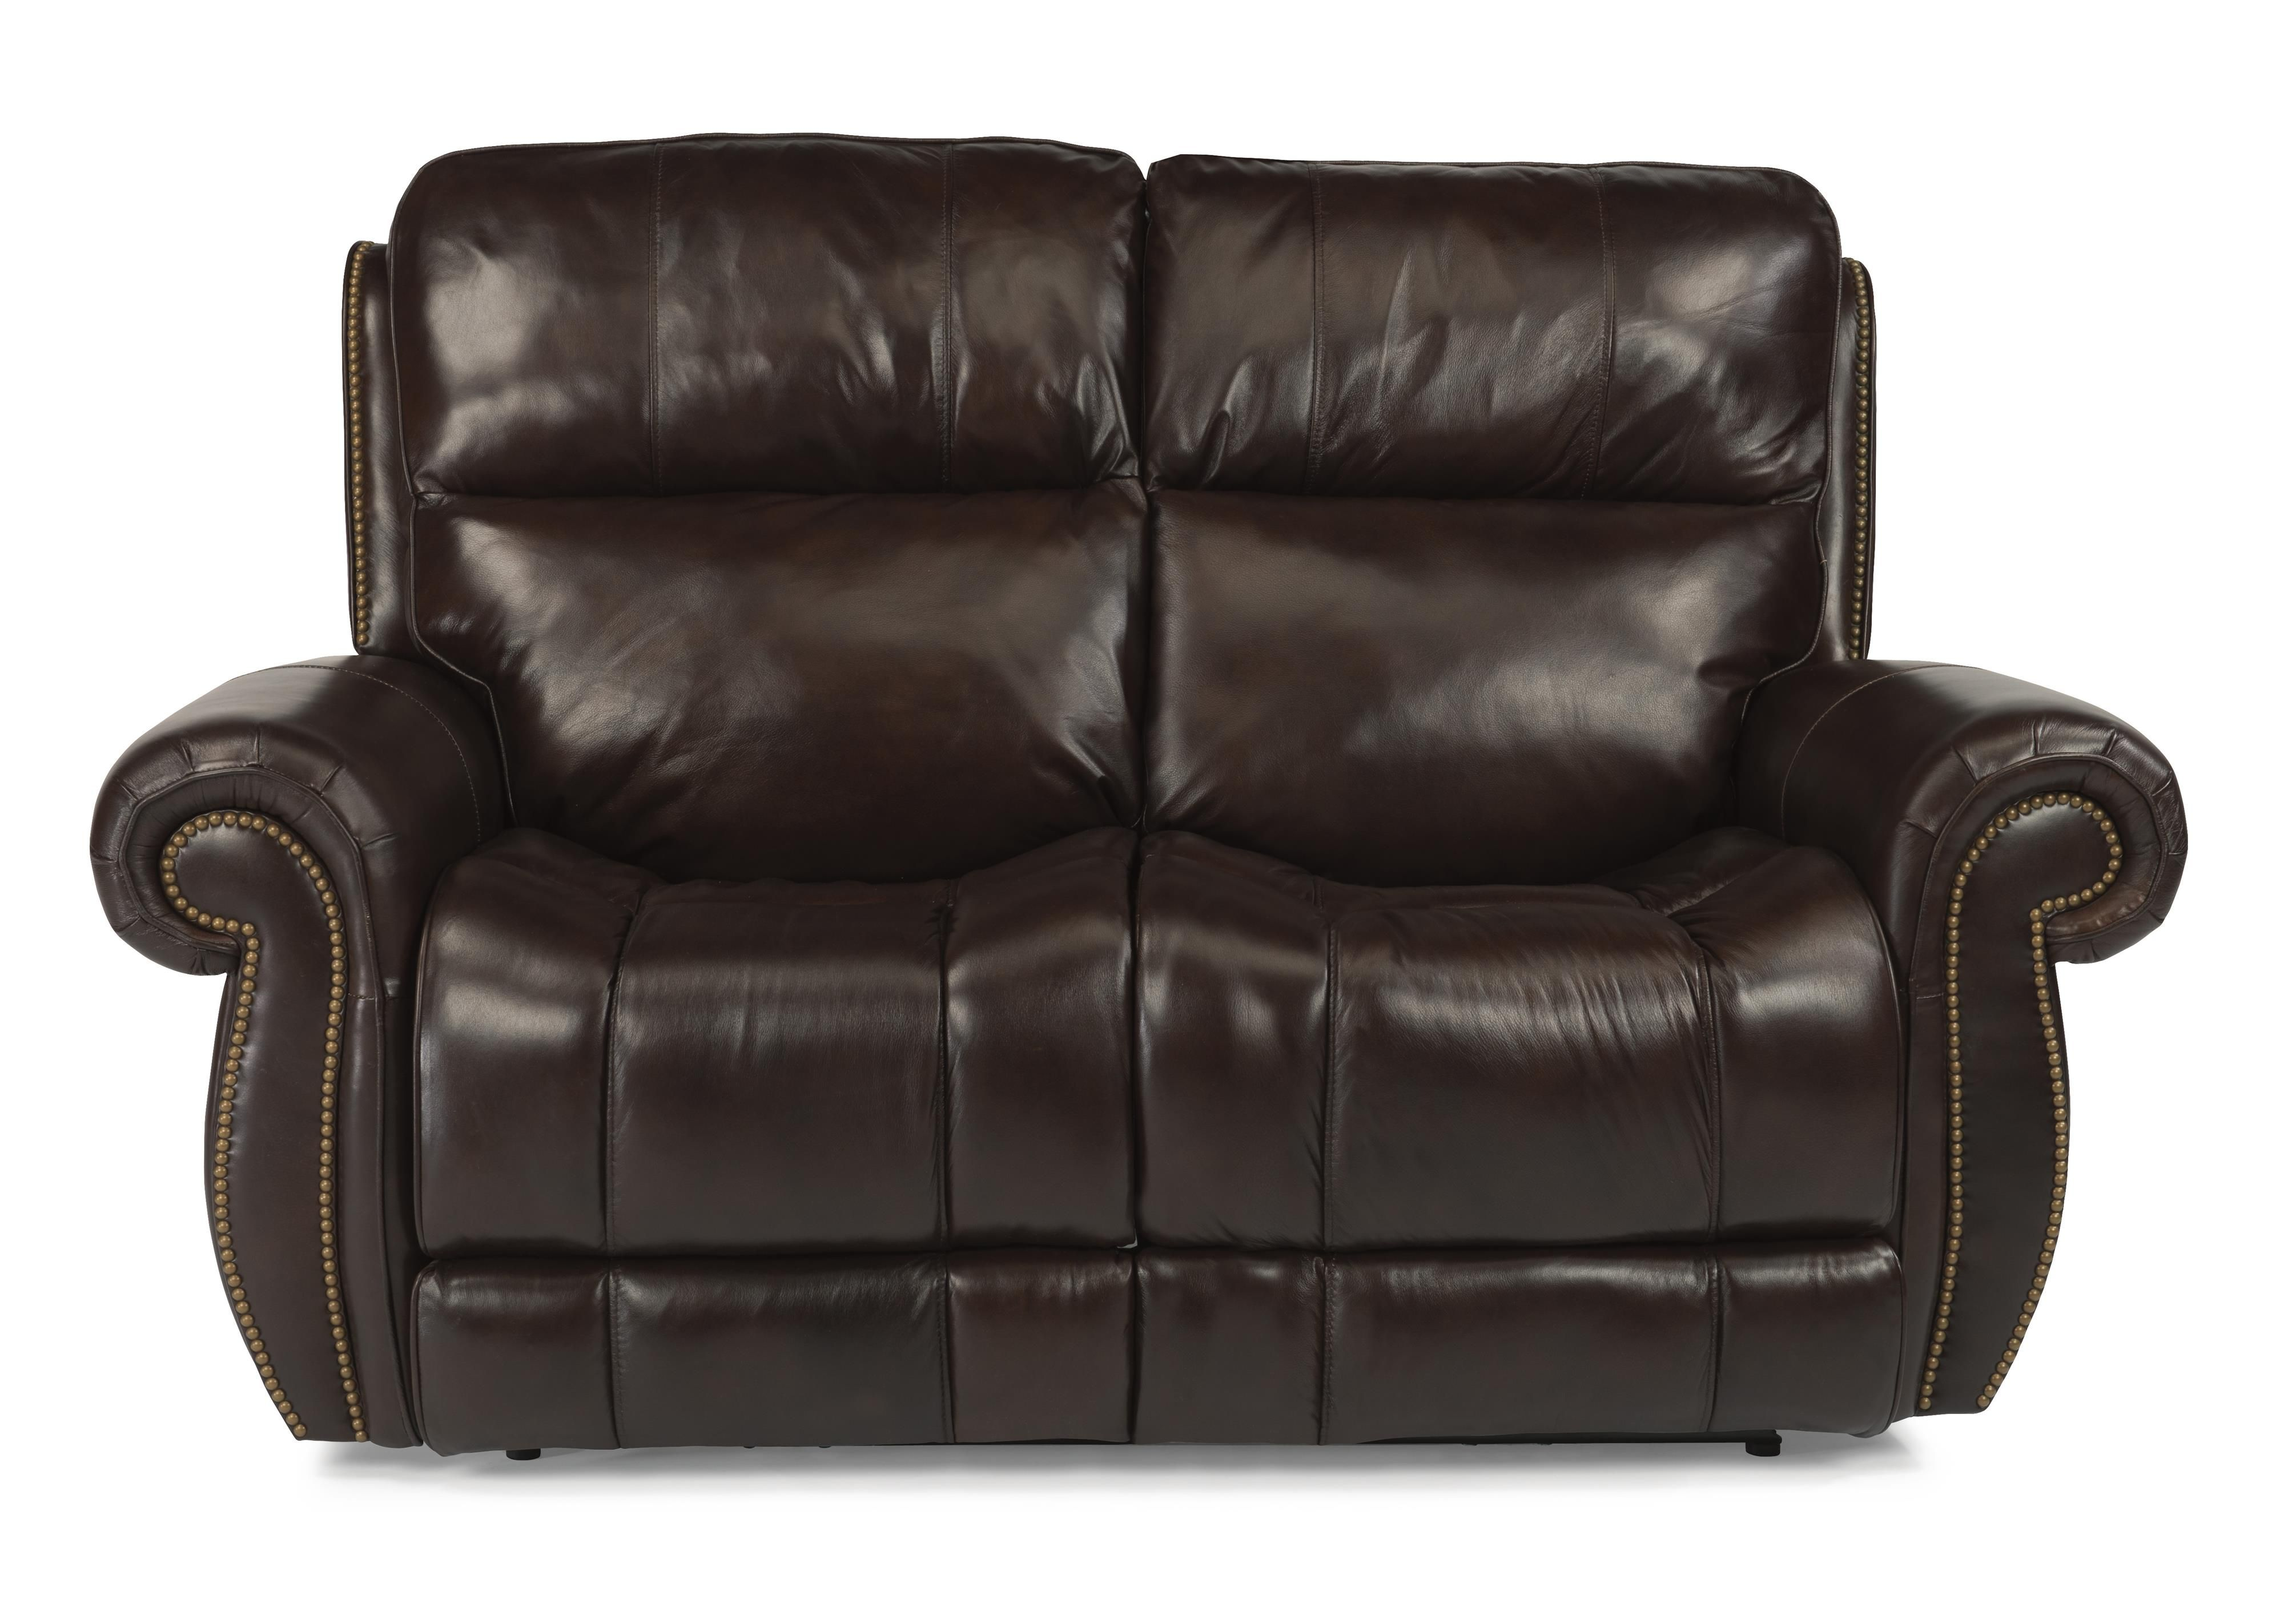 Best Images About Leather Furniture On Pinterest Nail Head - Ashley furniture pineville nc